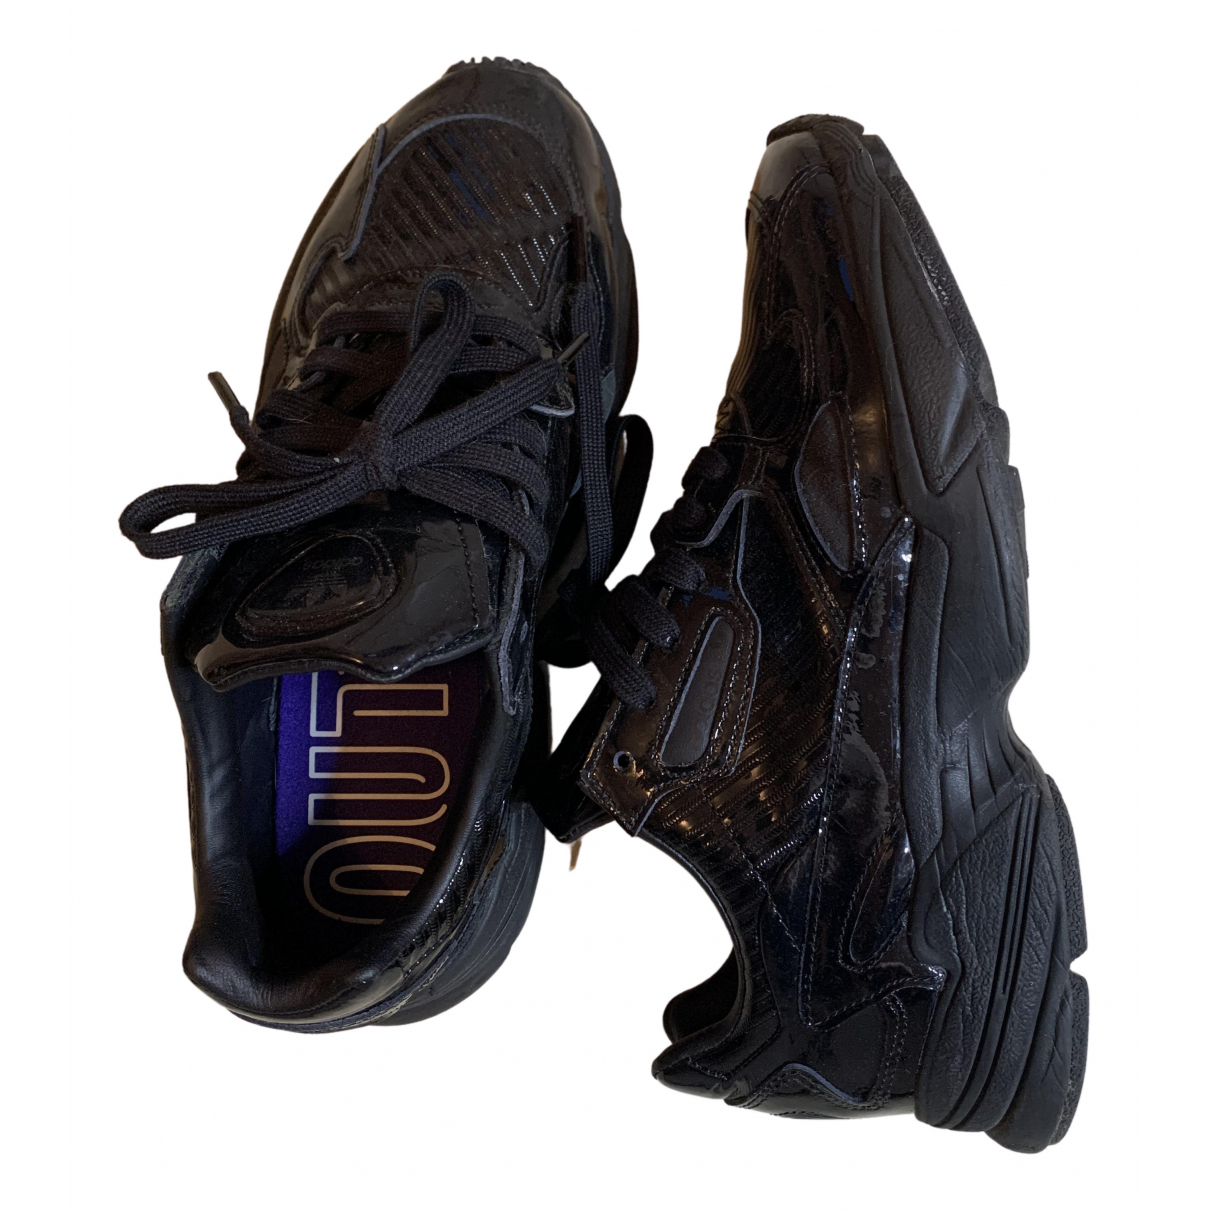 Adidas Falcon Black Patent leather Trainers for Women 40 EU